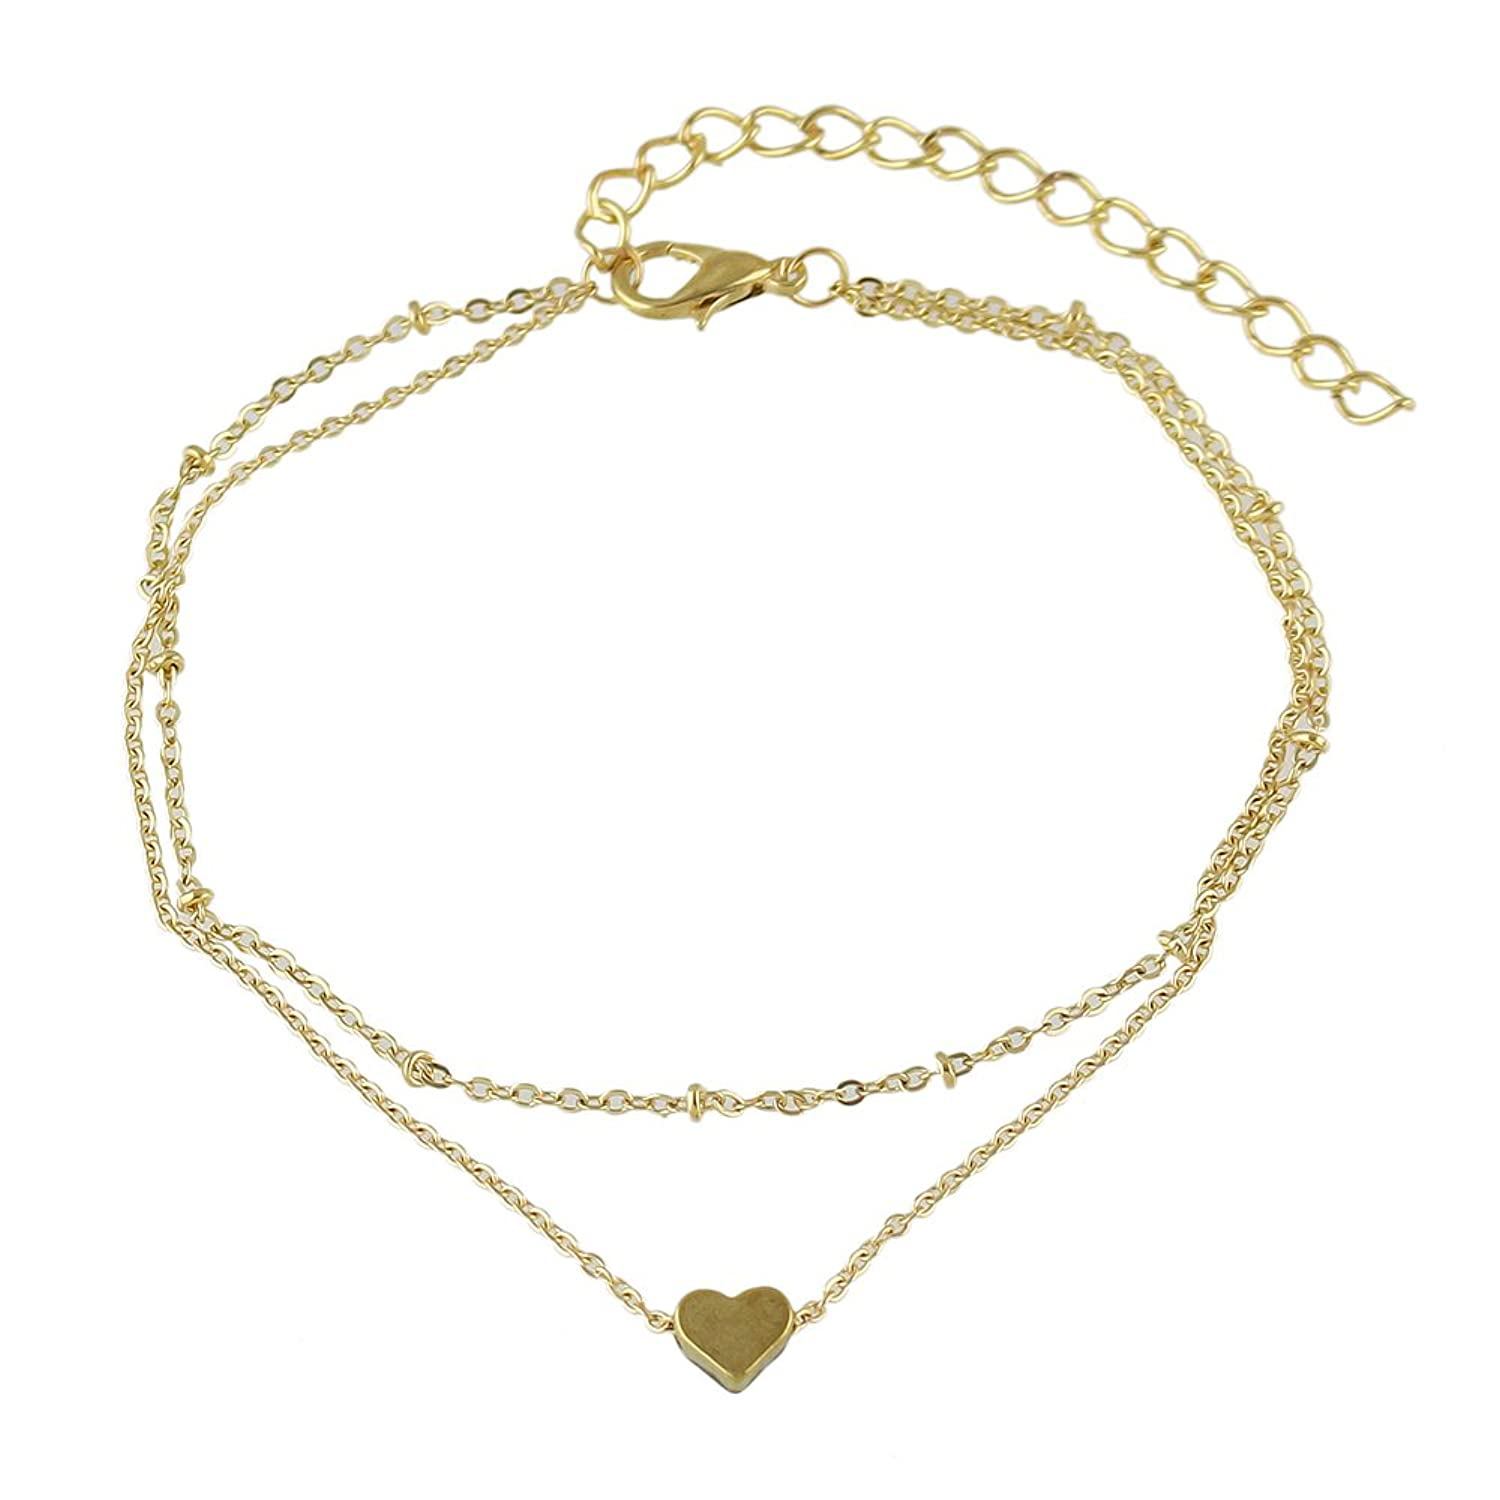 Feelontop Boho Chic Style Sexy Barefoot Double Layer Gold Chain Heart Charm Anklets with Jewelry Pouch